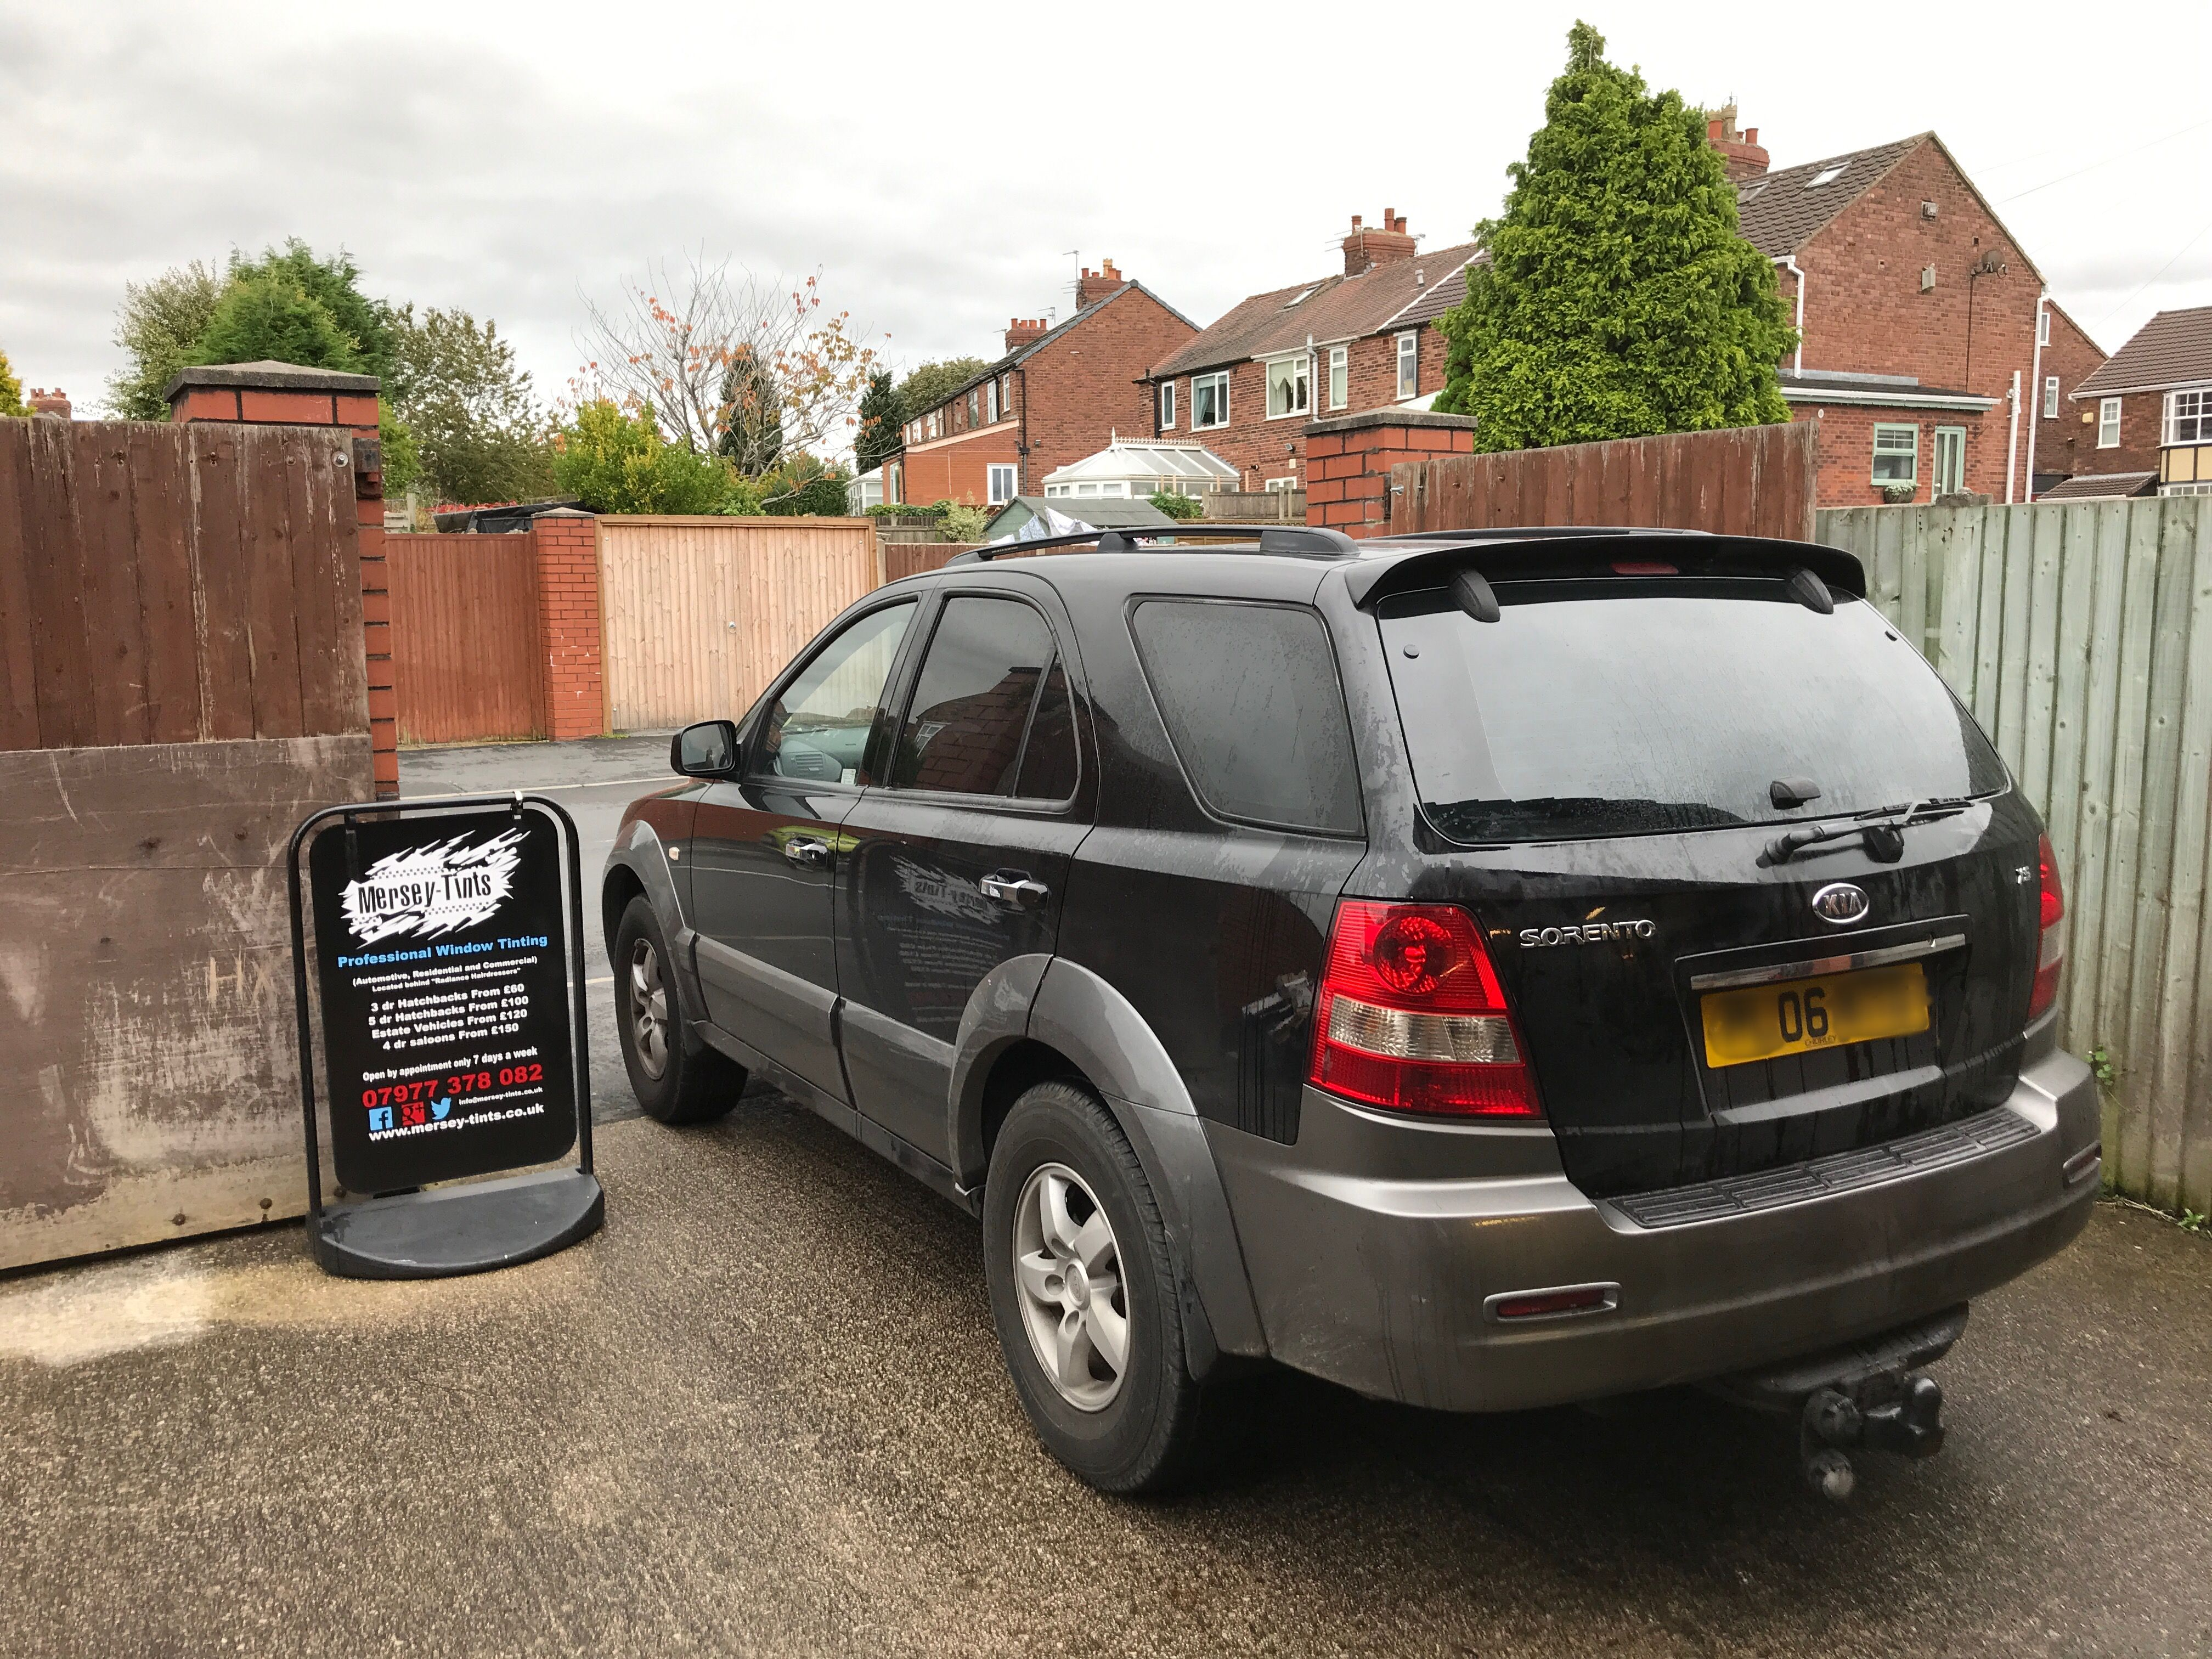 2006 Kia Sorento In This Morning For 5 Carbon Limo Tints To The